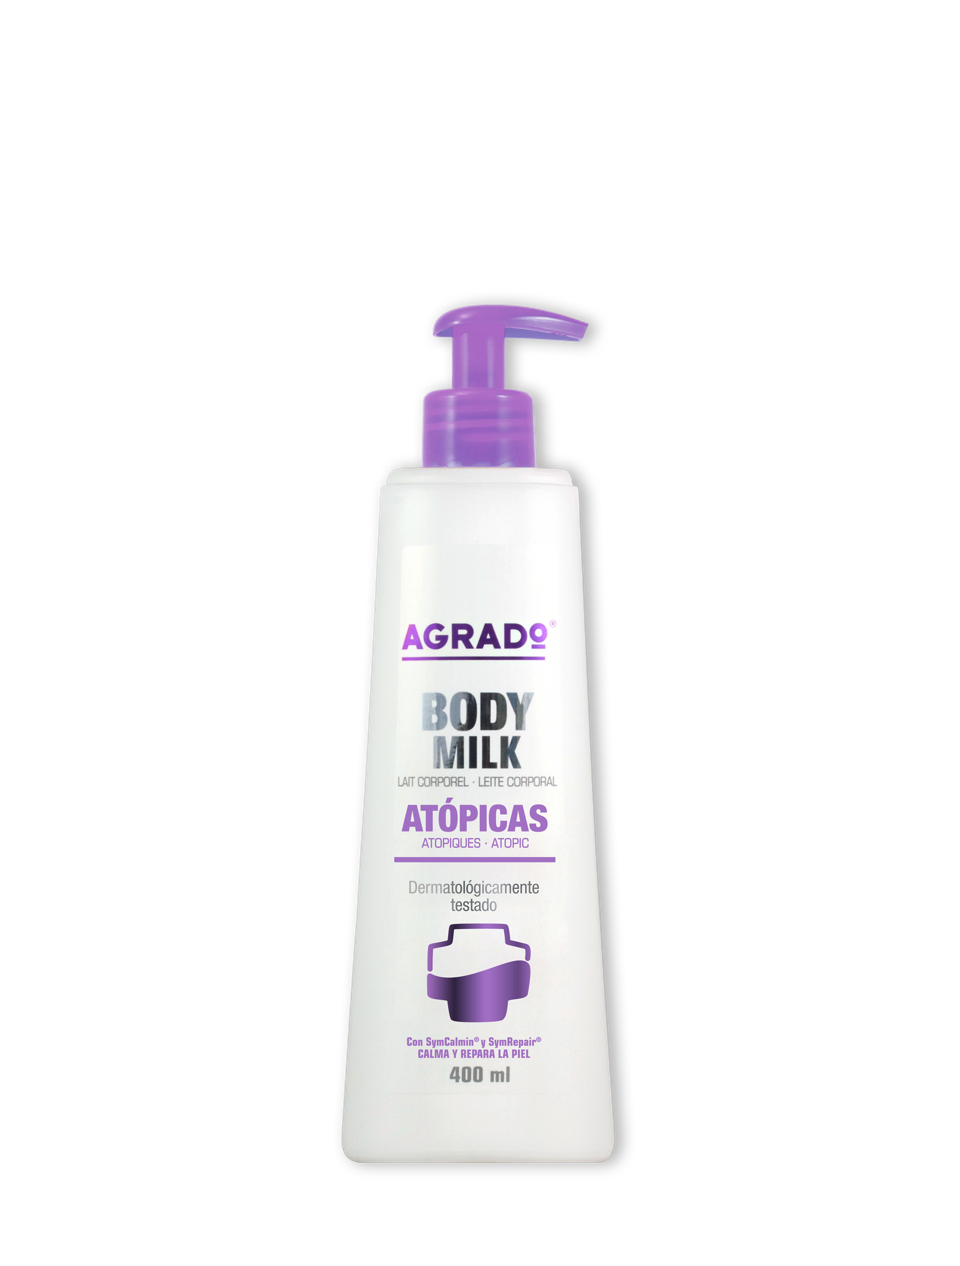 body-milk-pieles-atopicas-agrado-5818